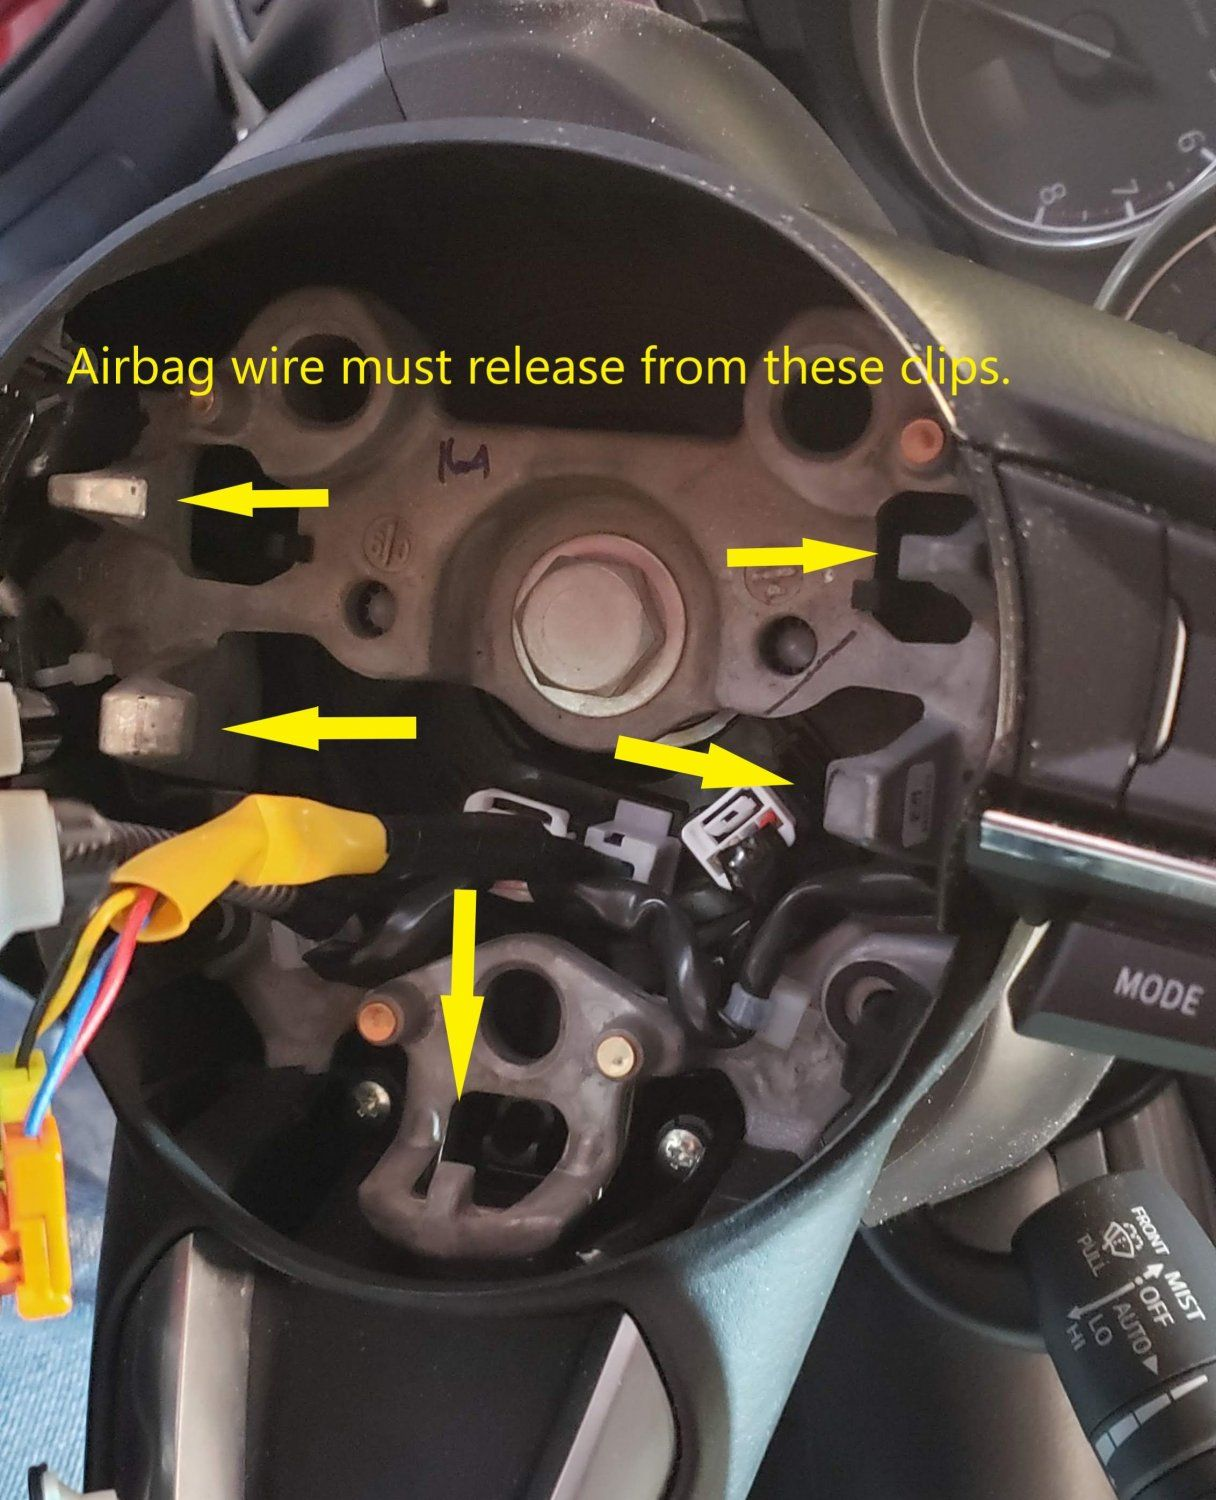 air bag clips.jpg